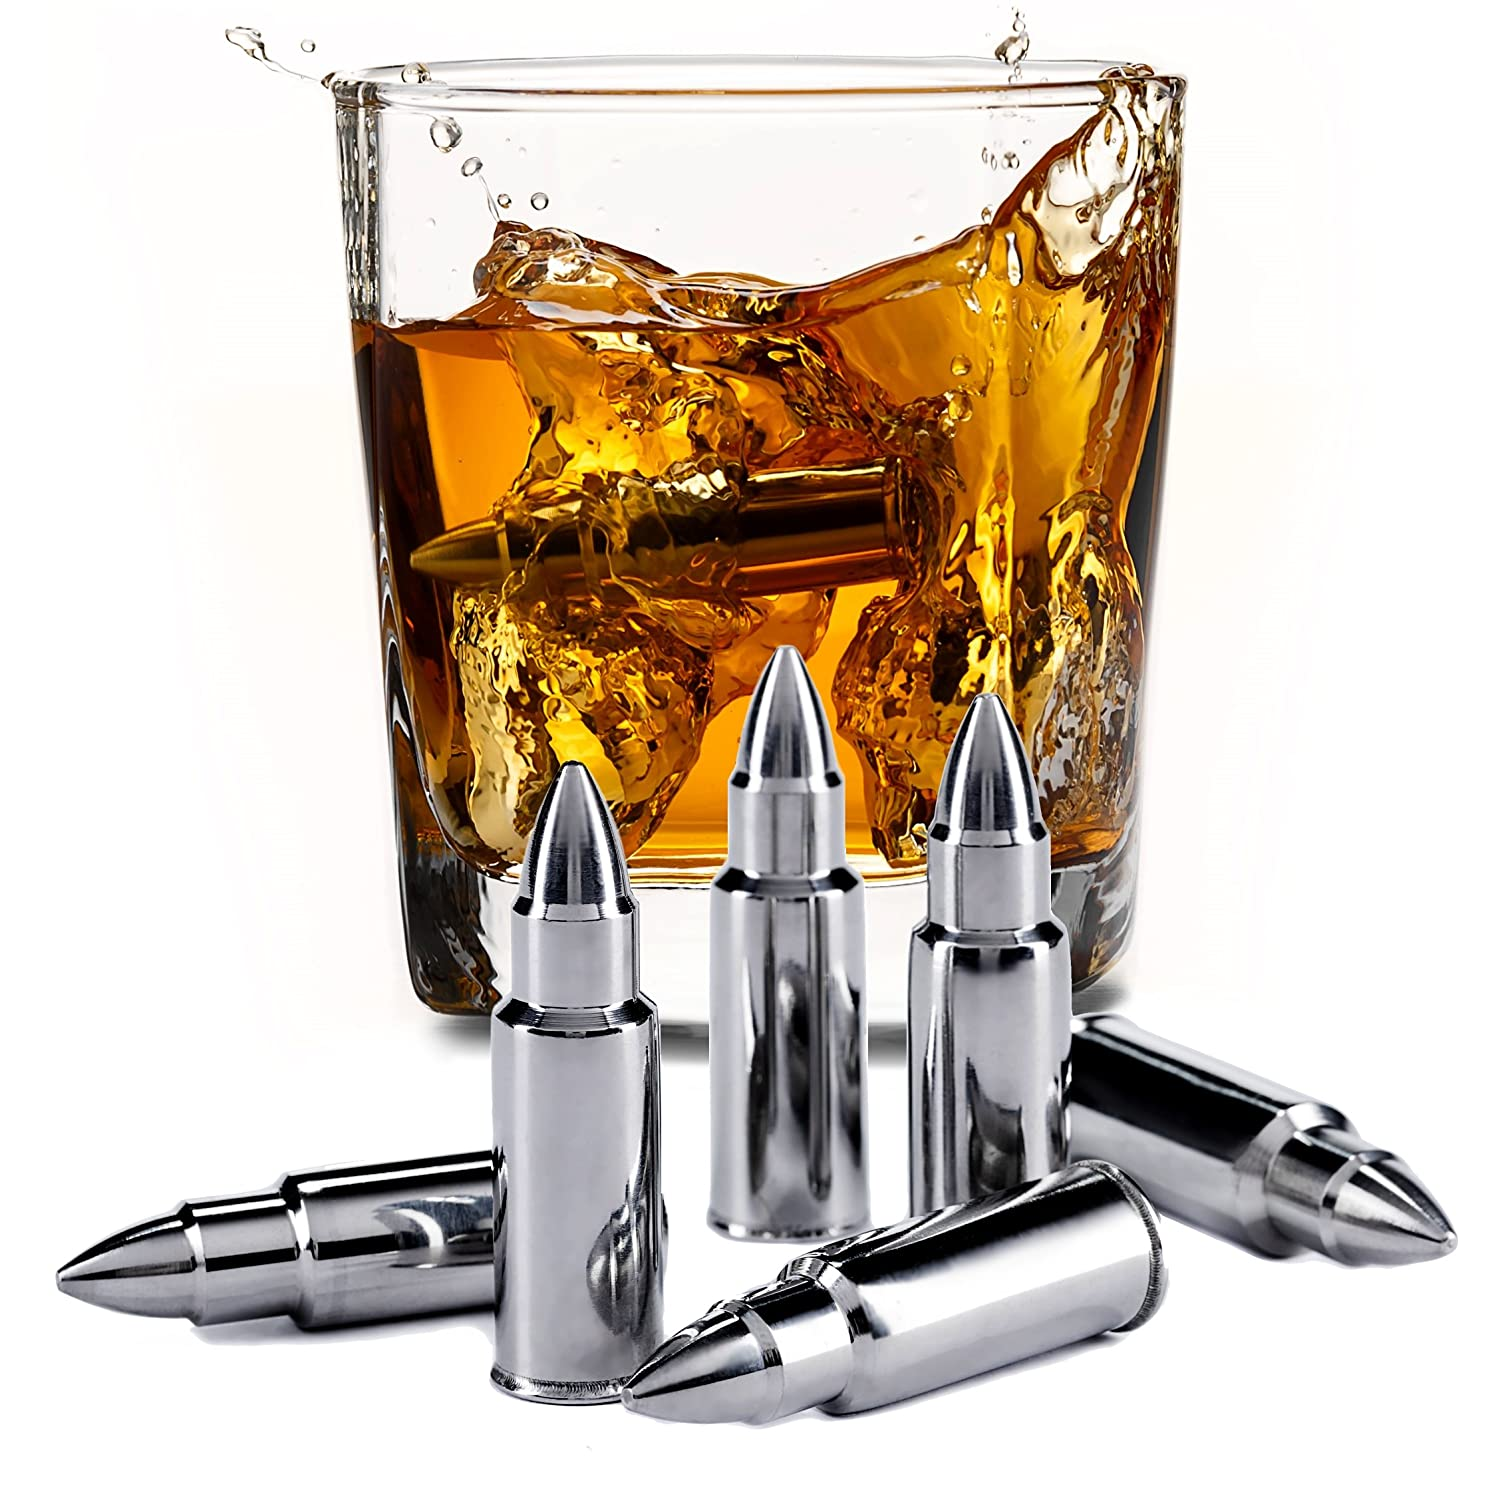 Stainless Steel Bullet Shaped Whiskey Stones Set of 6 - Premium Chilling Rocks - Ice Stones With Tongs And Freezer Pouch, Great Gift Idea for Whiskey Lovers Frolk WB-6